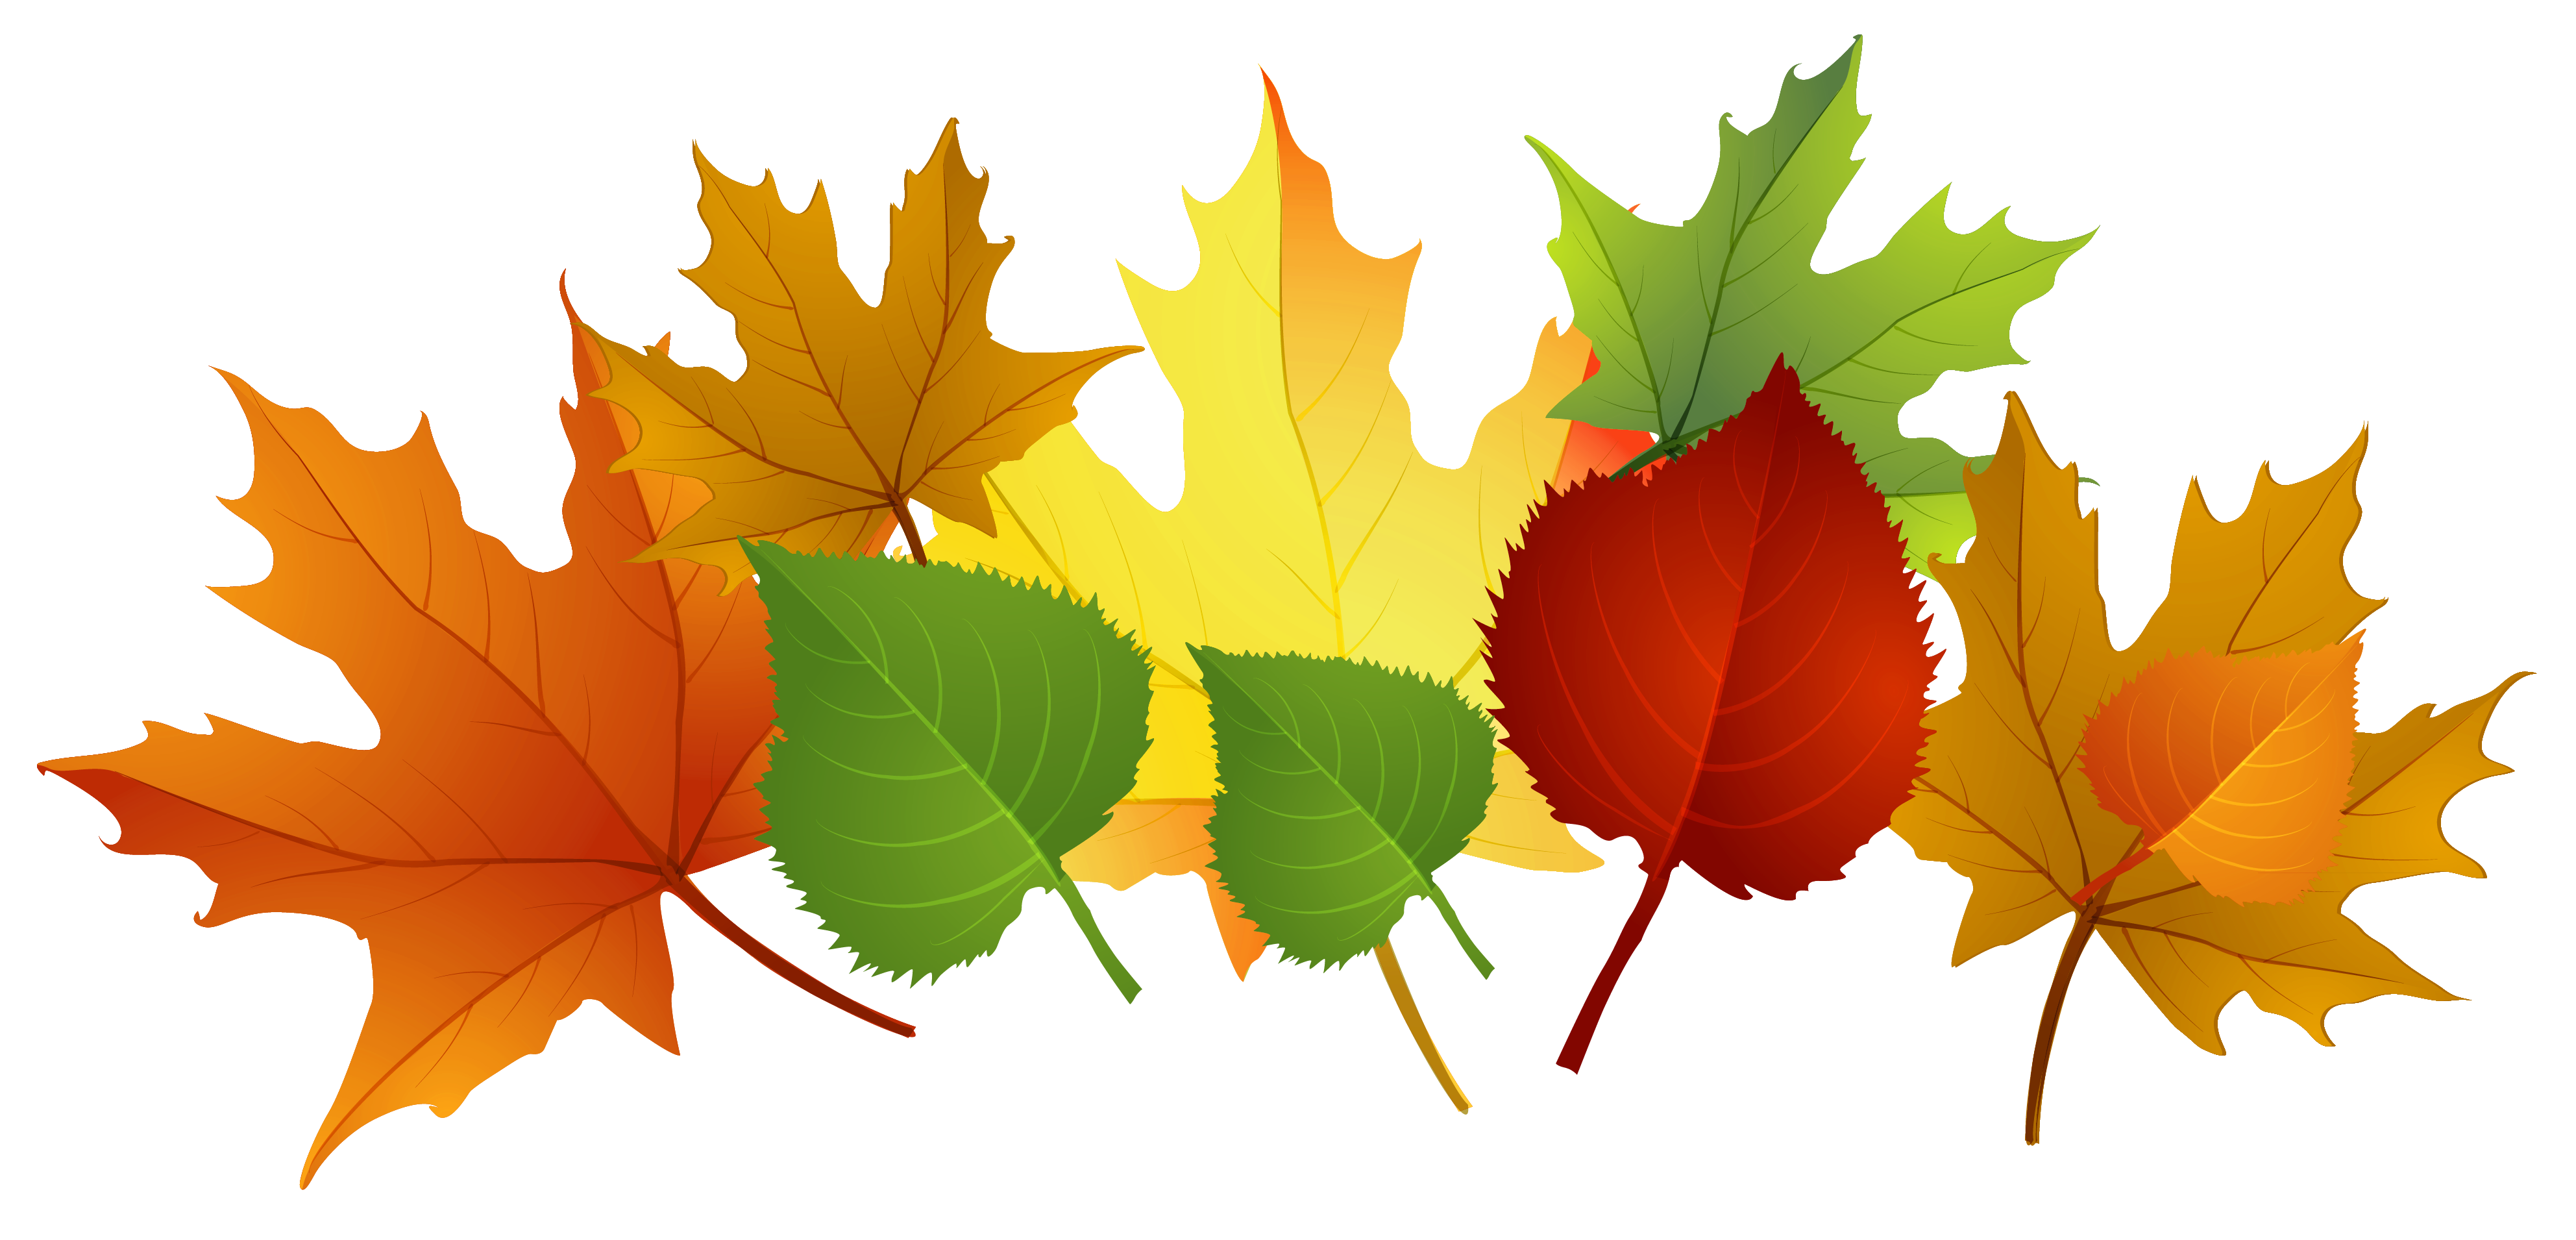 Leaves Clip Art Free & Look At Clip Art Images.